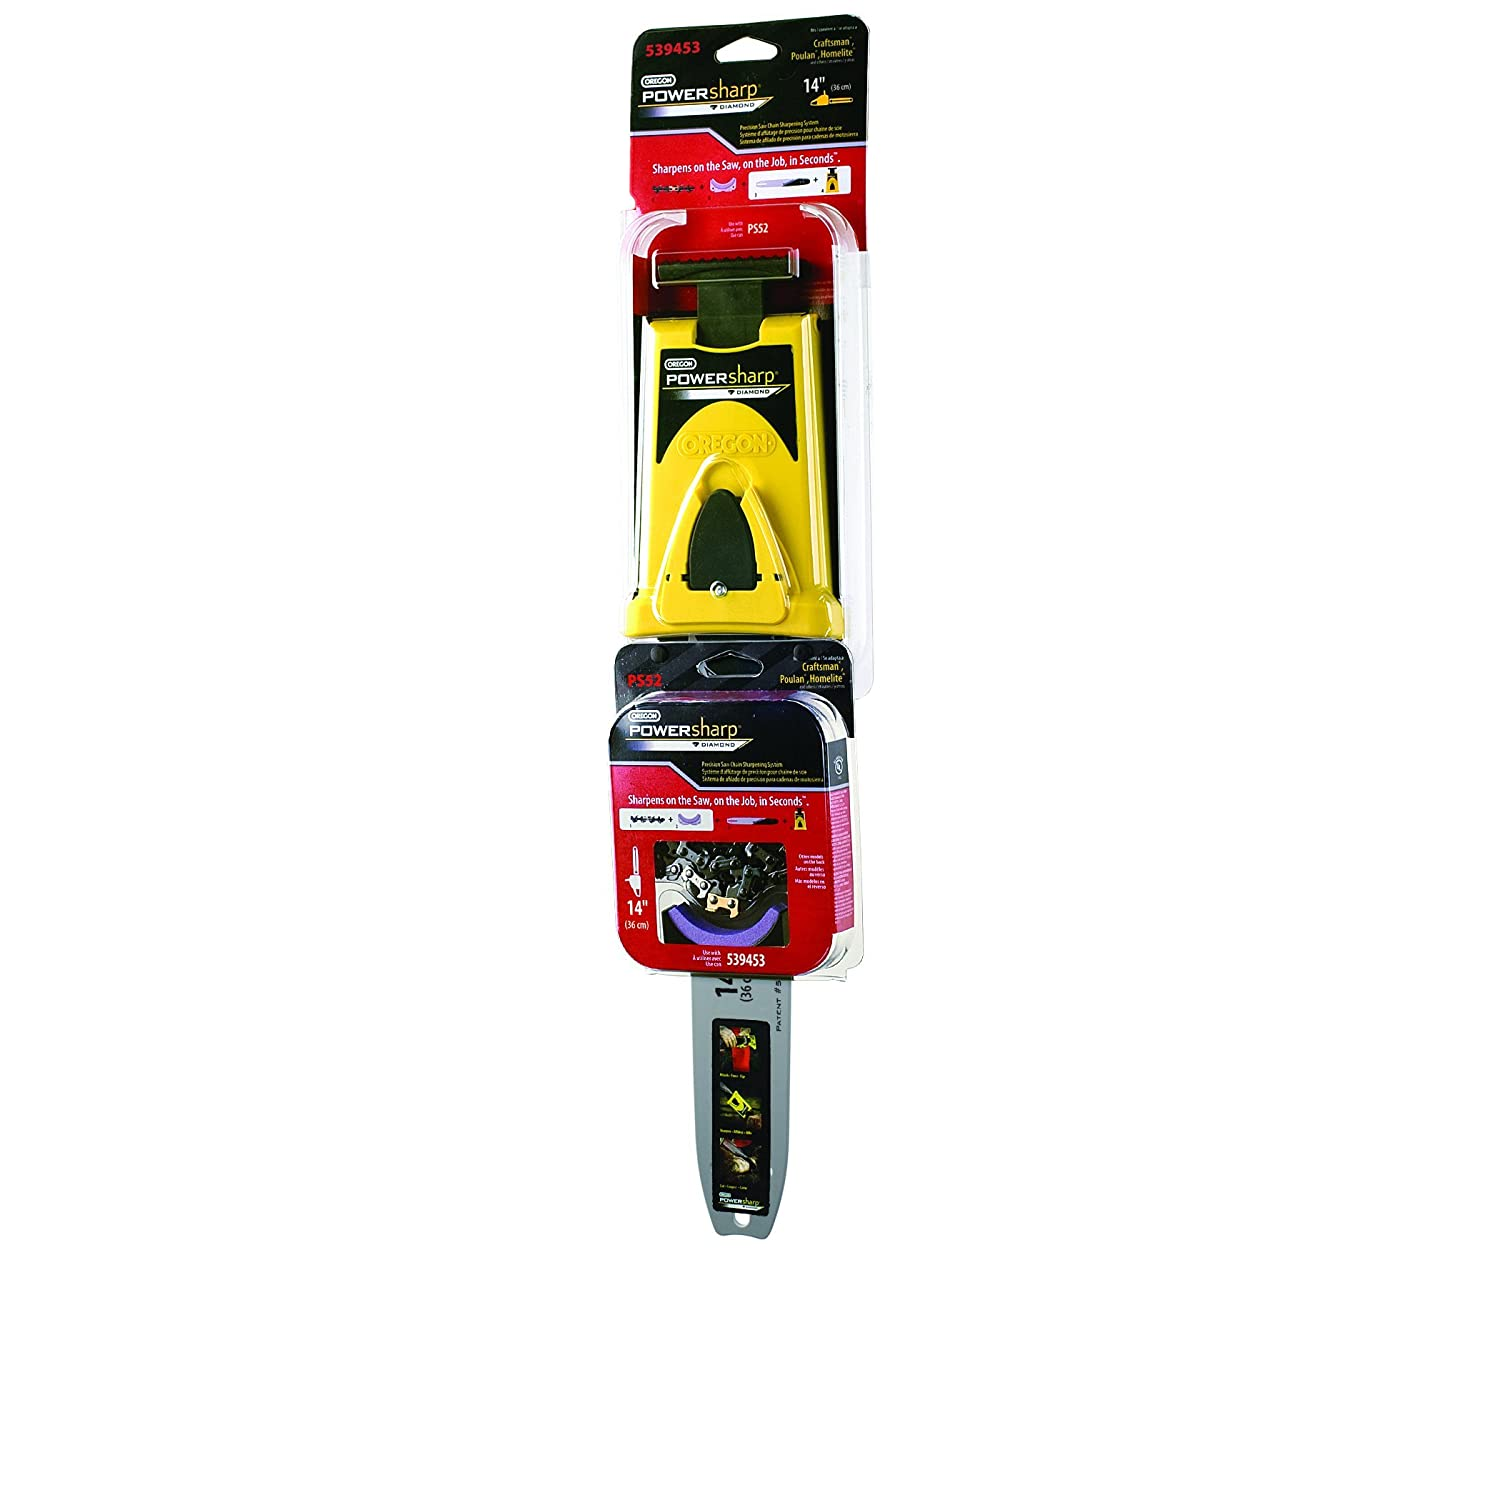 Oregon 541220 PowerSharp Starter Kit For 14-Inch Craftsman, Echo, Homelite, And Poulan Chain Saws